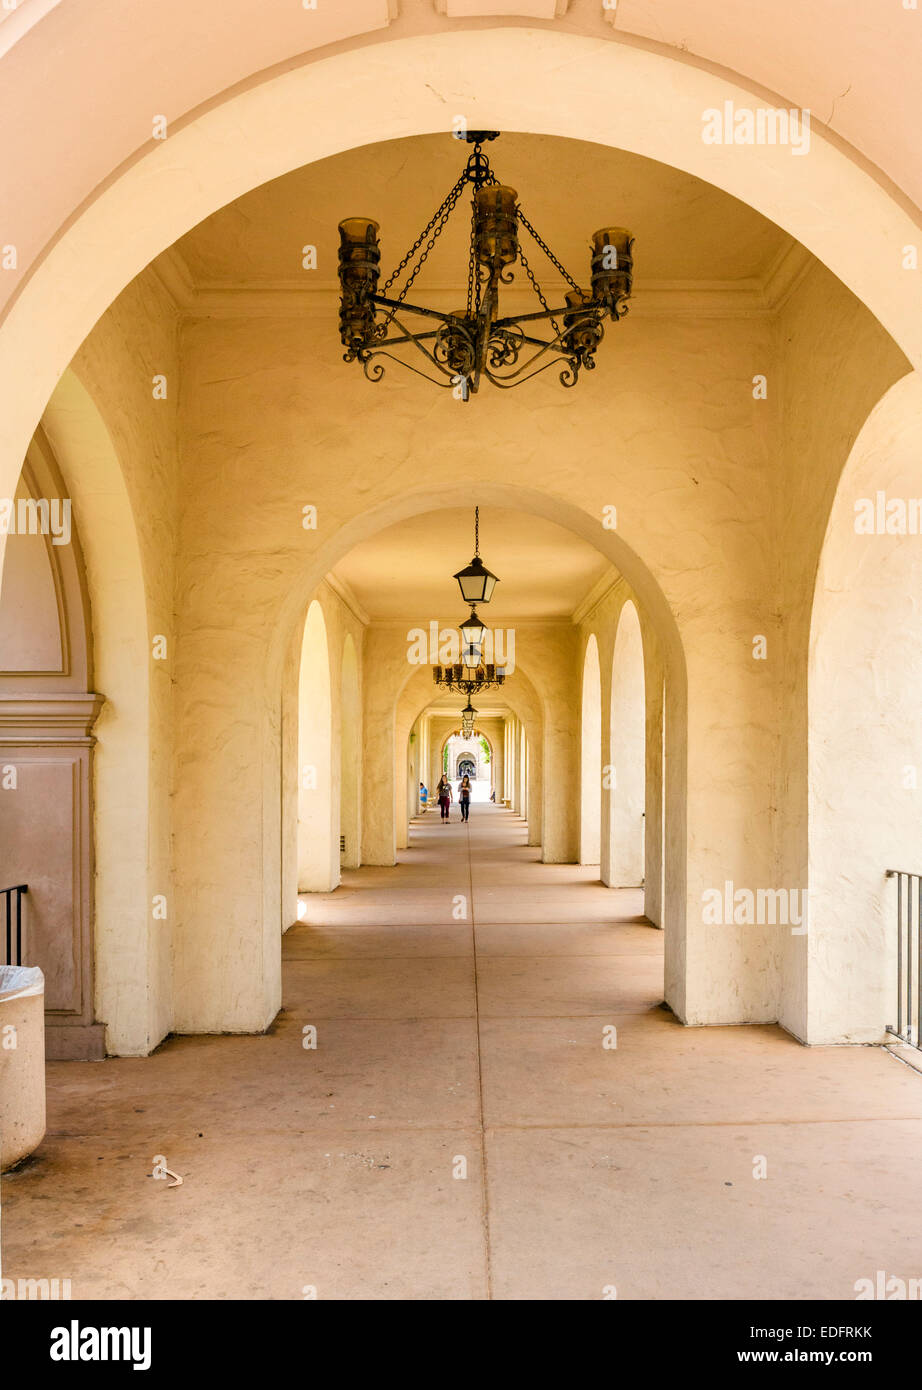 Arcade in the Casa del Prado, Balboa Park, San Diego, California, USA - Stock Image